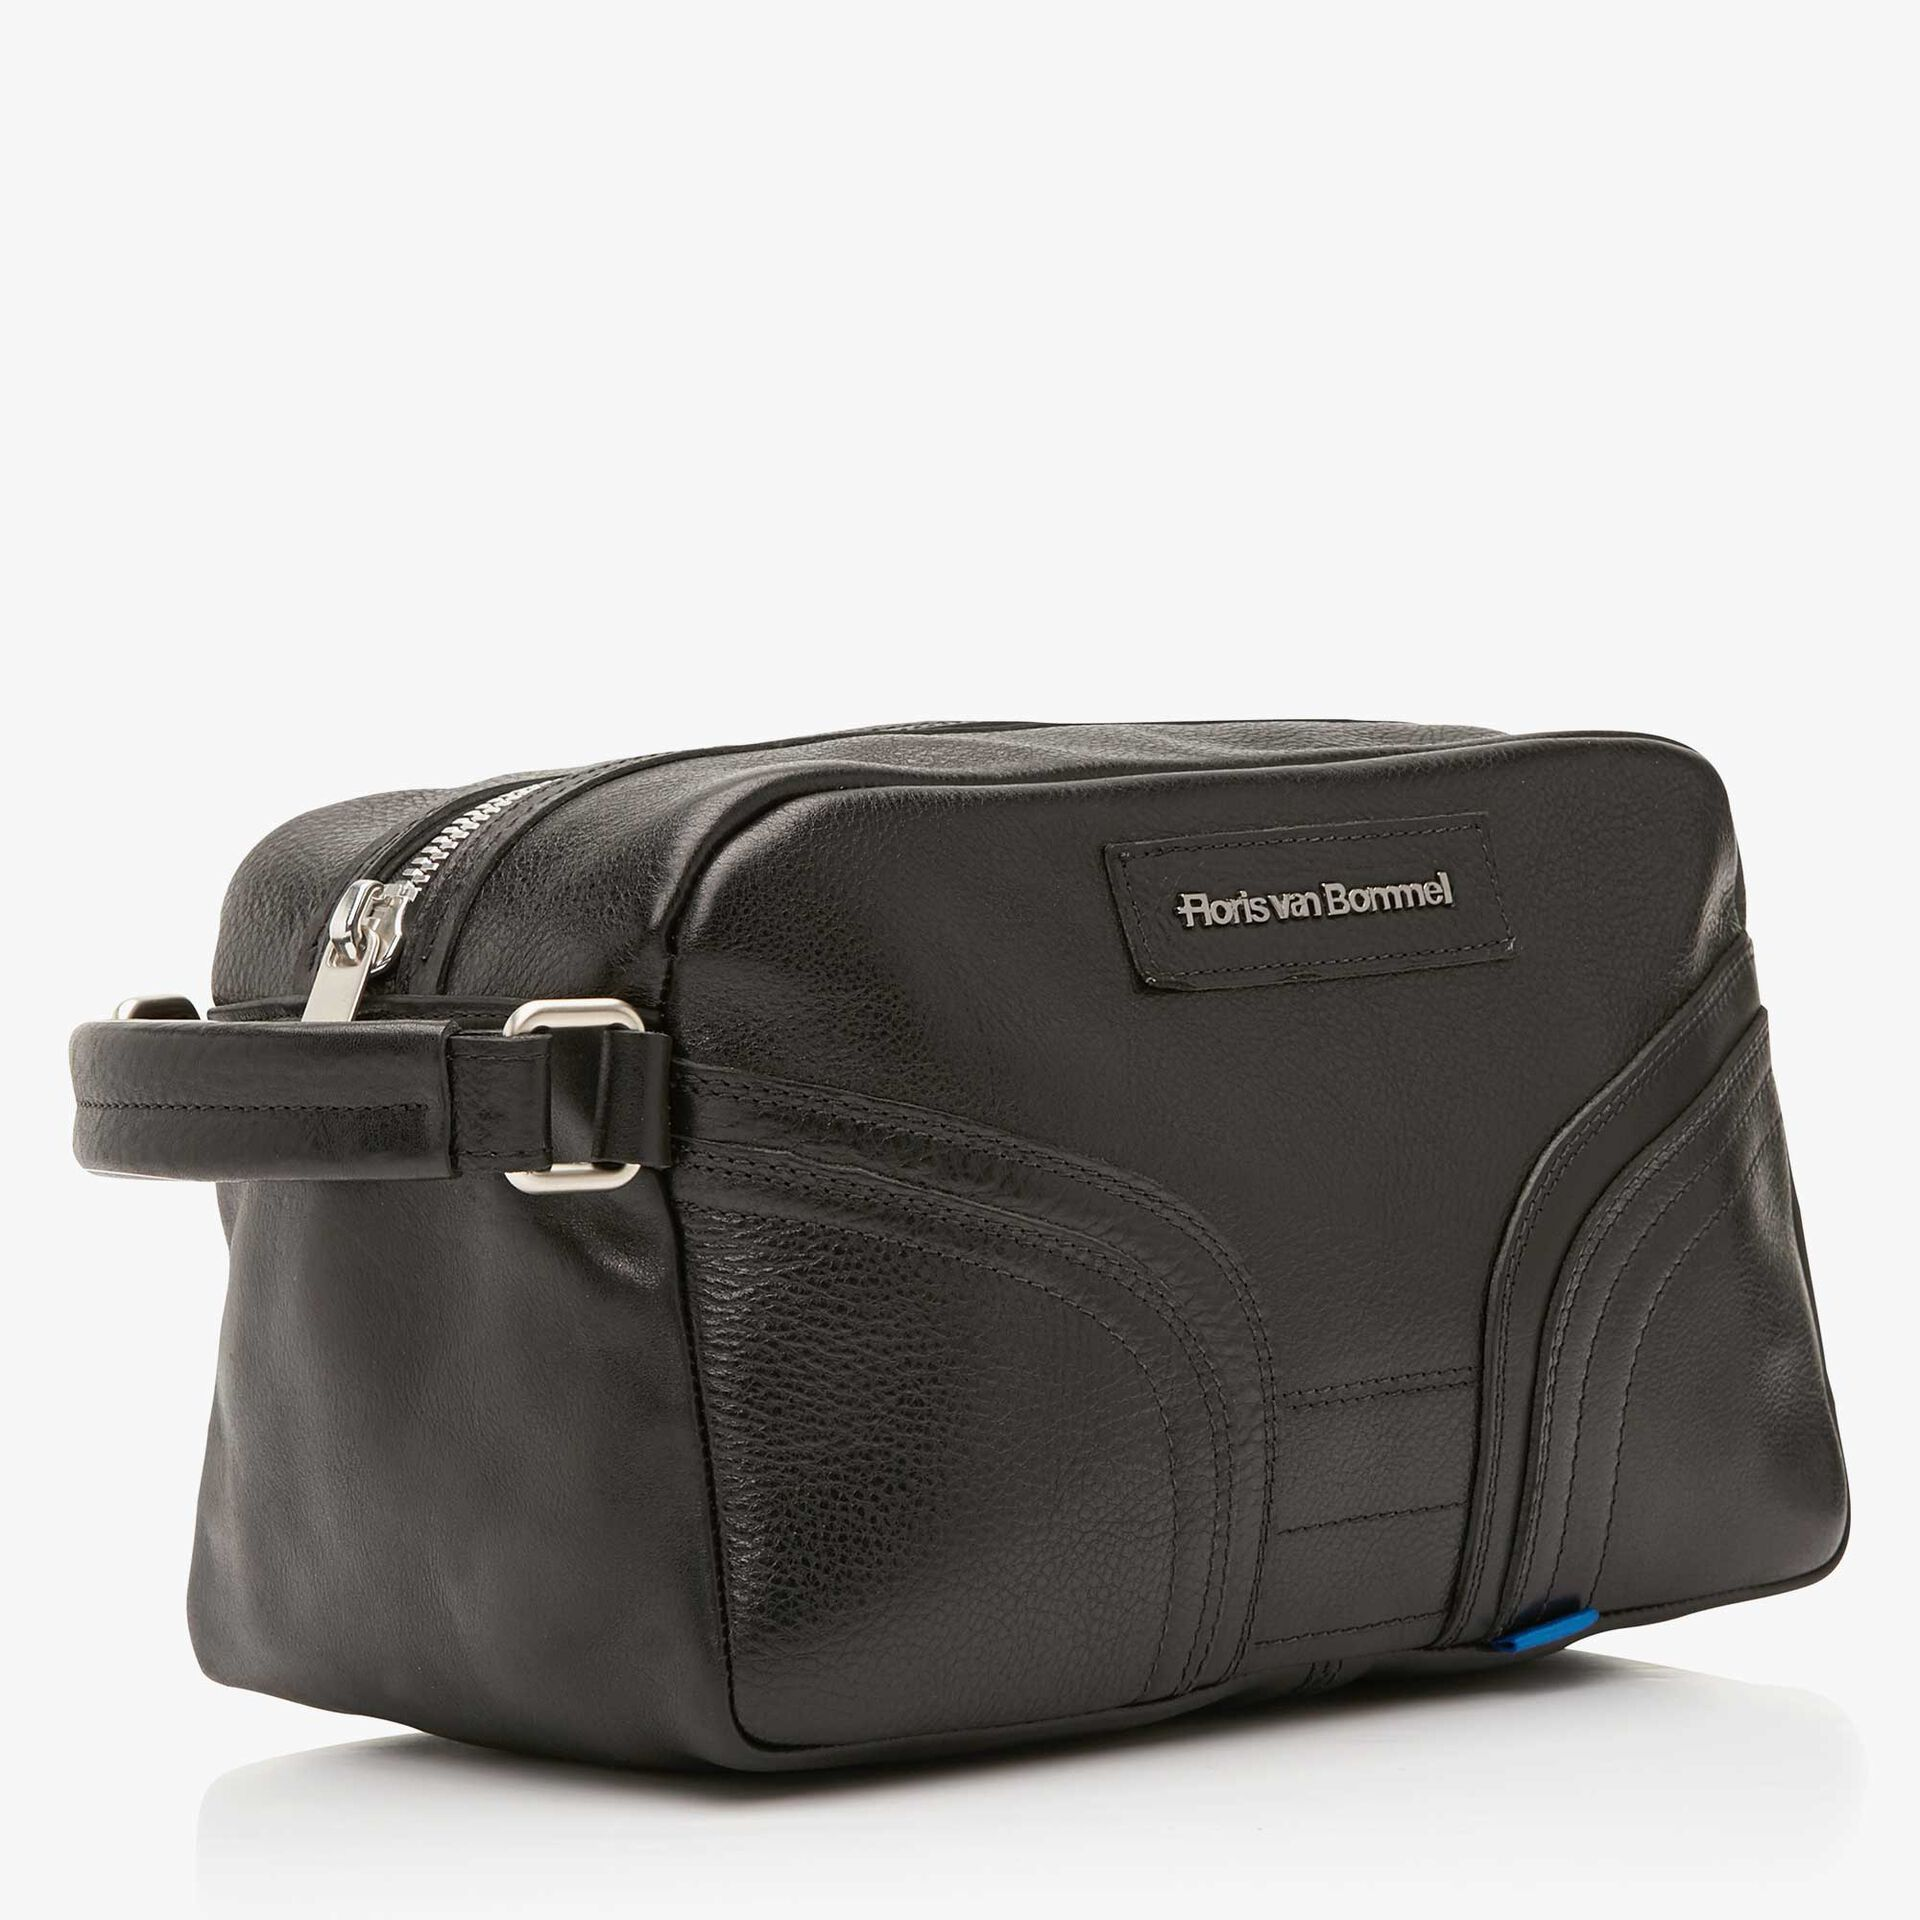 Floris van Bommel black leather toilet bag